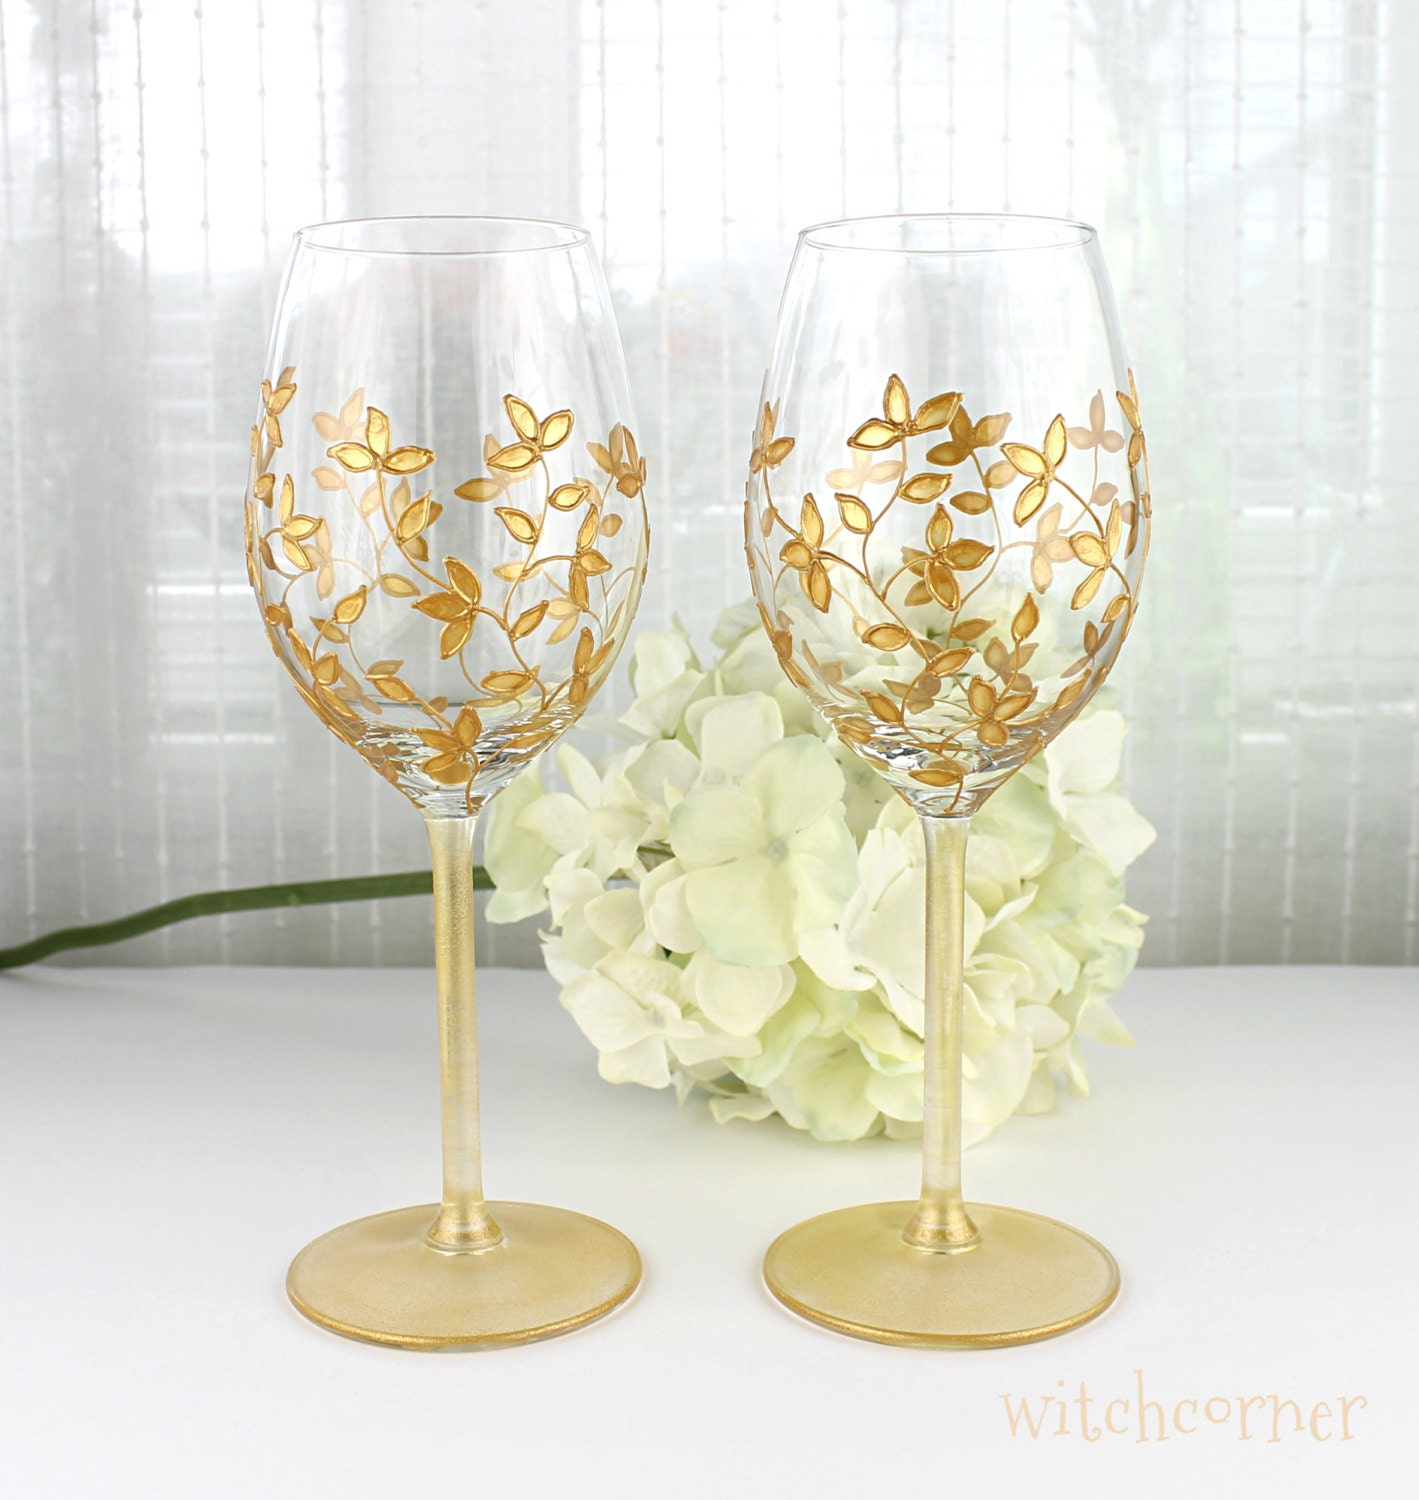 These Delicately Painted Wine Glasses Make A Fabulous Gift For Weddings